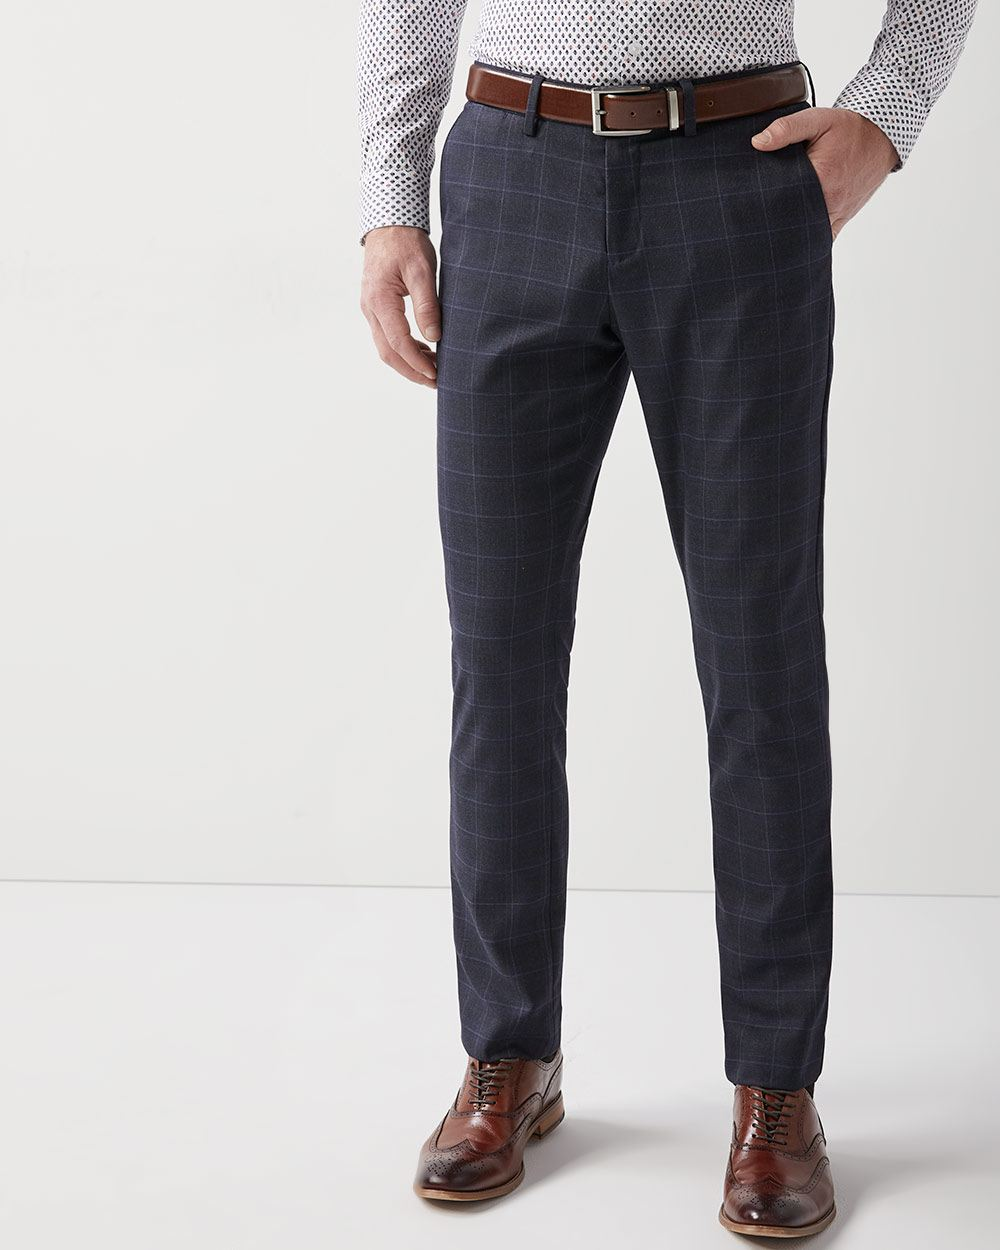 Slim fit navy grid check City Pant